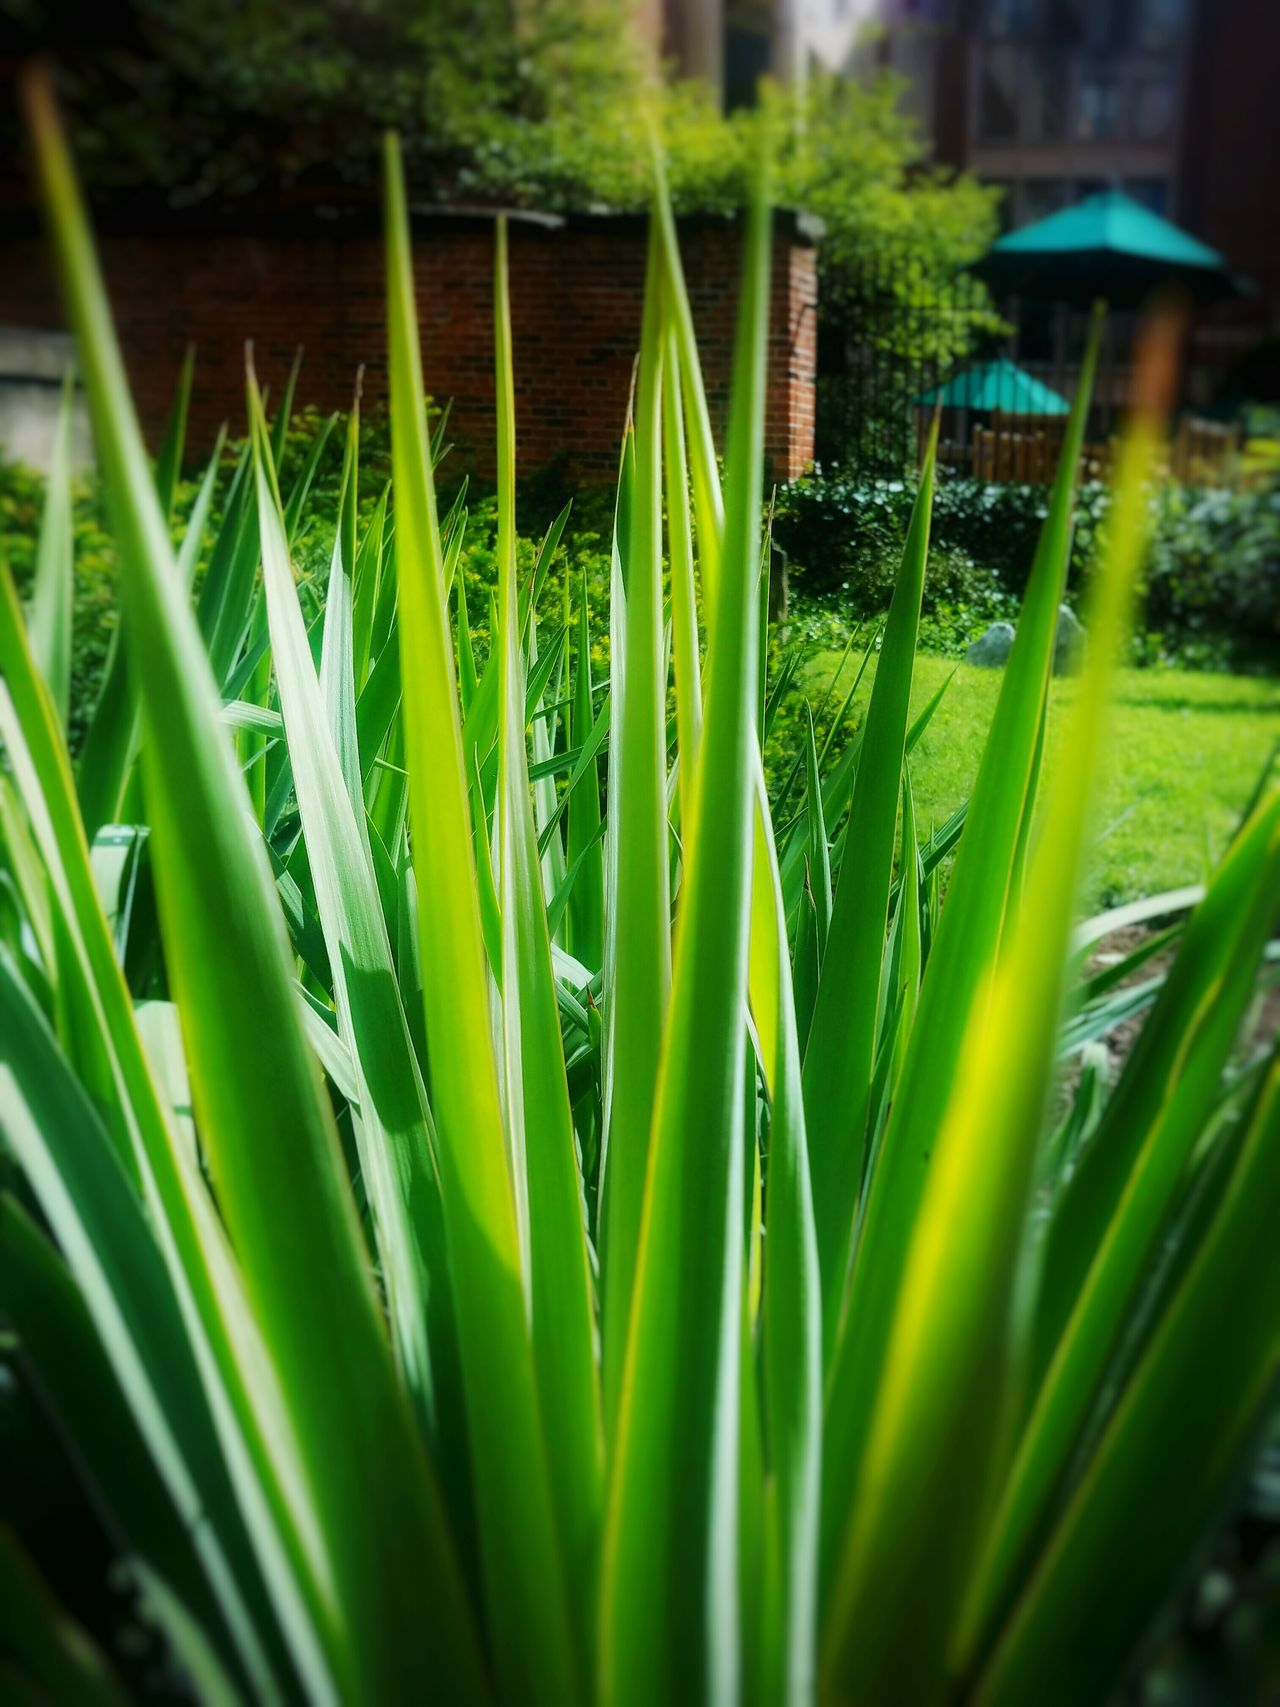 Growth Nature Photography Nature_collection Naturelover Nature On Your Doorstep Natural Beauty Natureporn Green Color Green Nature Be Happy And Enjoy The Little Things Love One Another StillLifePhotography Enjoying What I Do Taking Photos ❤ Stilllearning Chillaxing Live, Love, Laugh